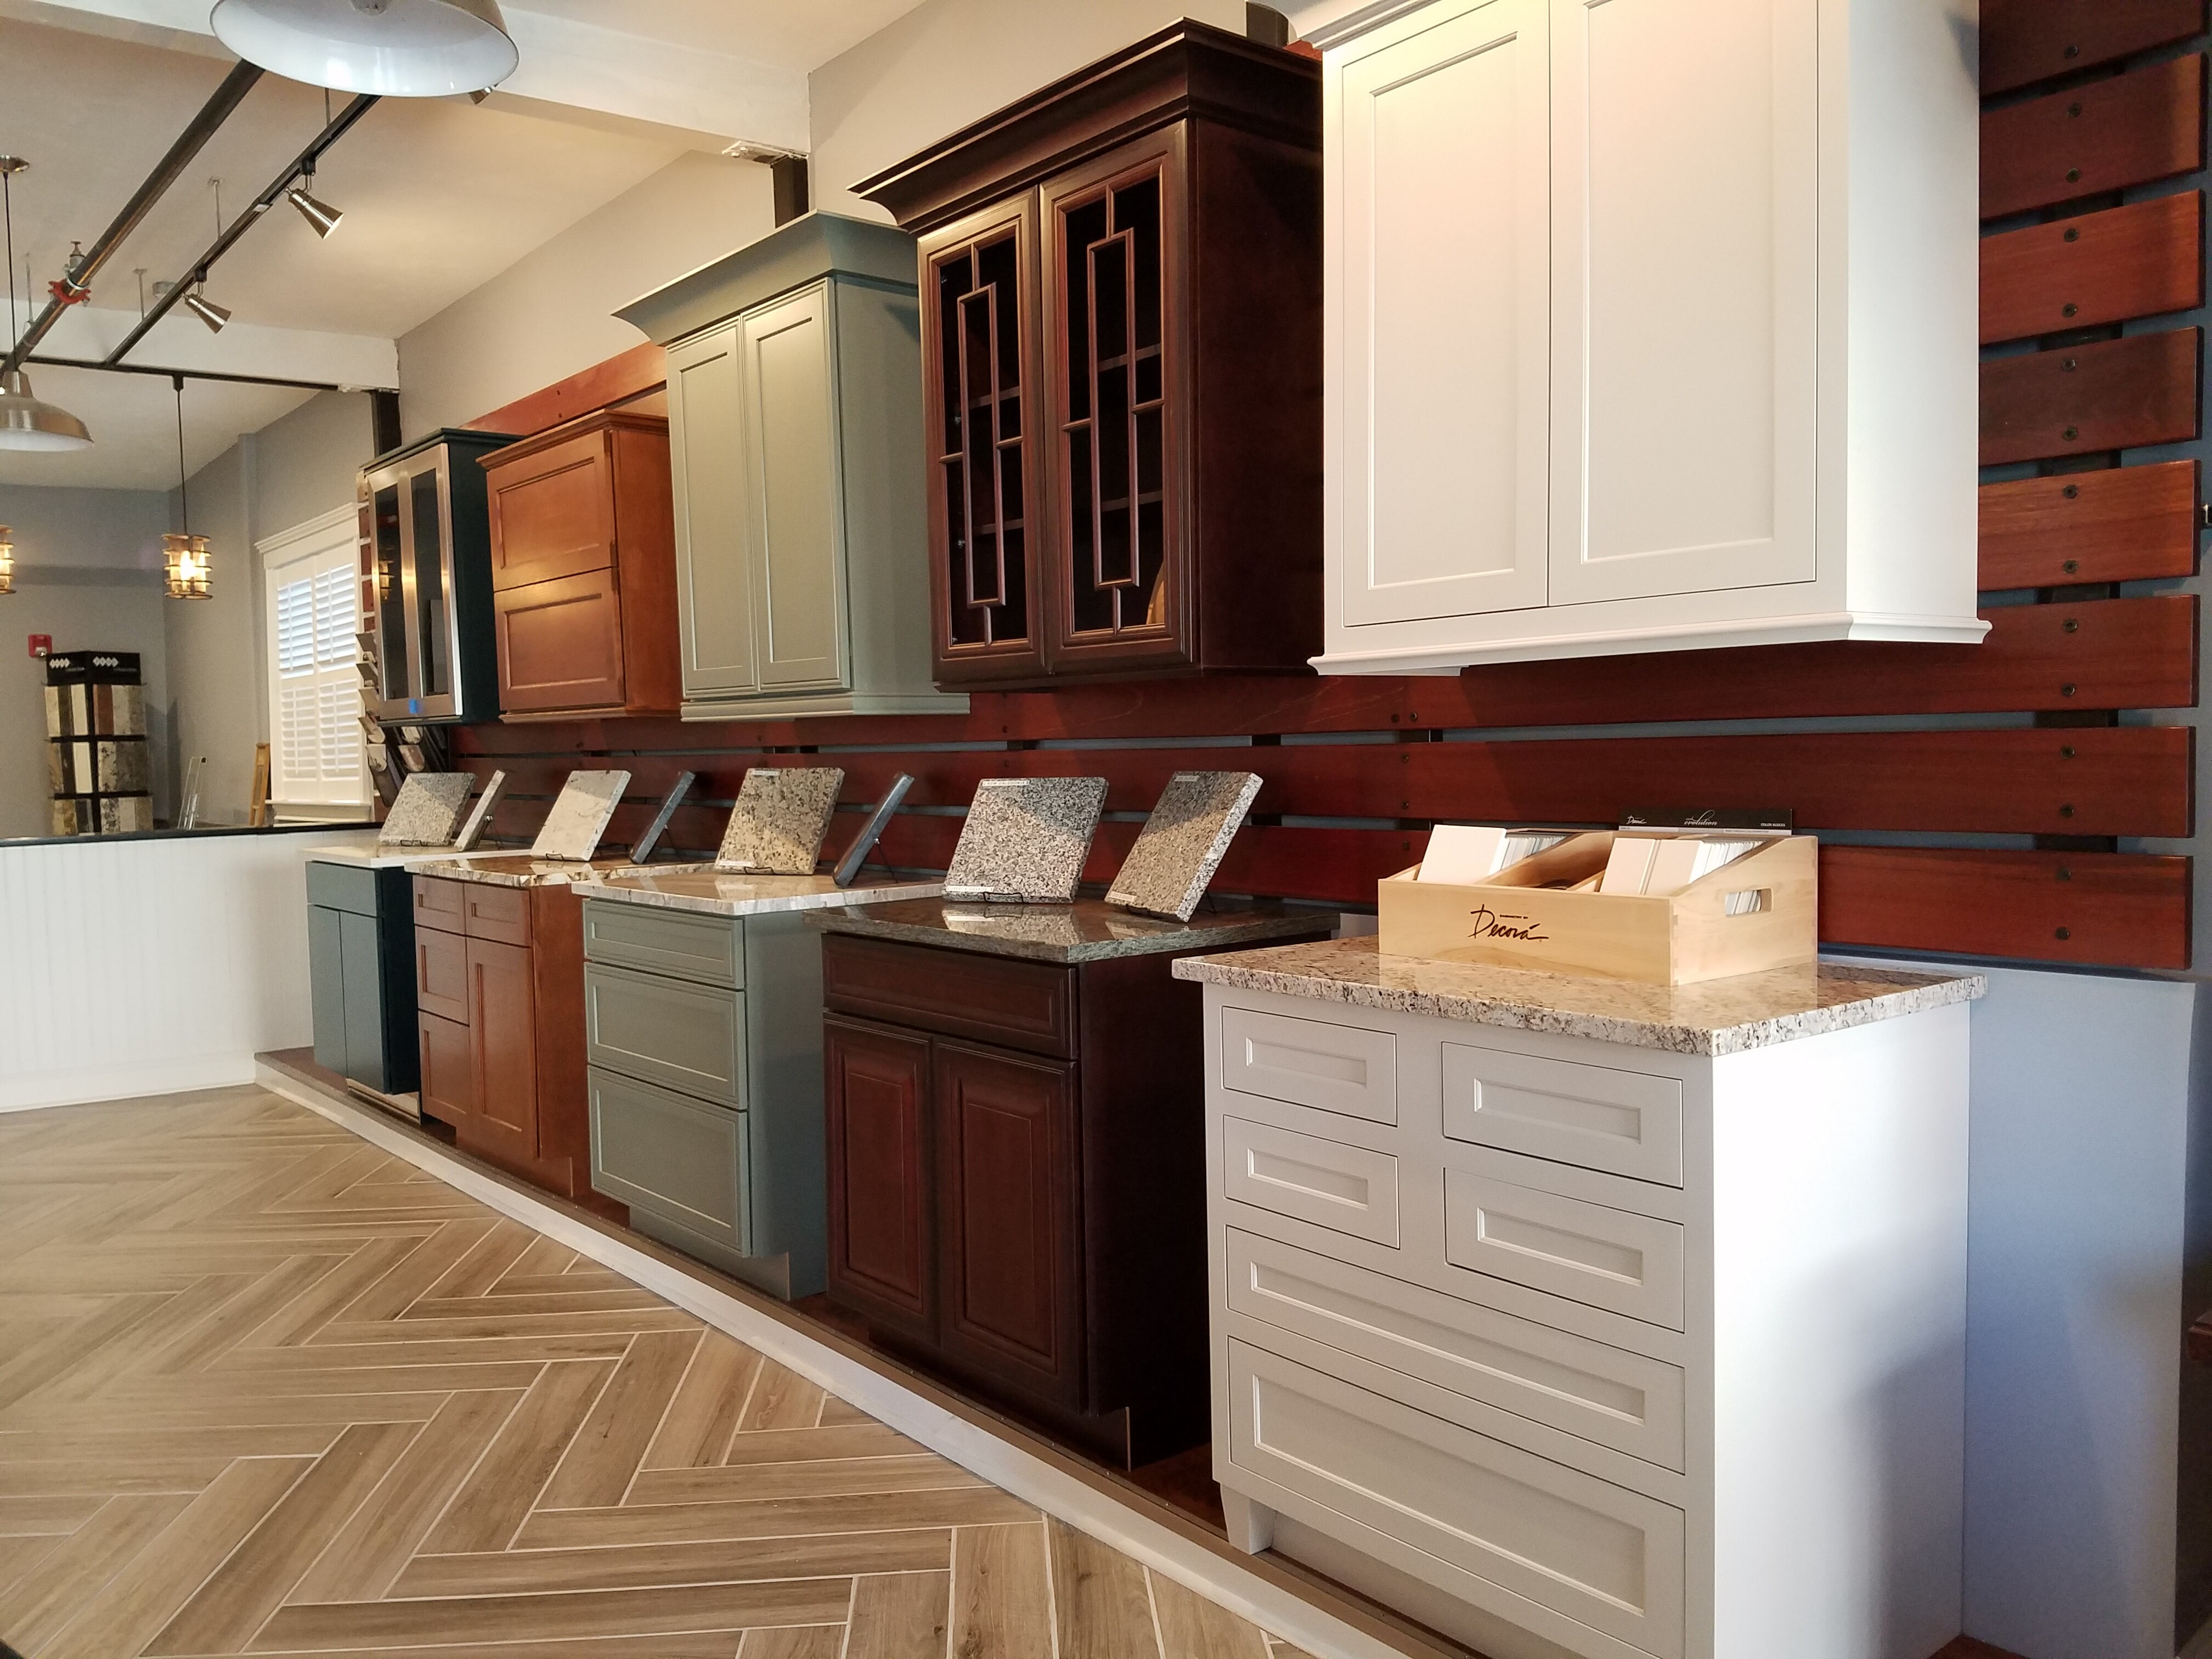 Showroom Selections Cabinets Countertops Kitchen Remodel Canty Brothers Construction